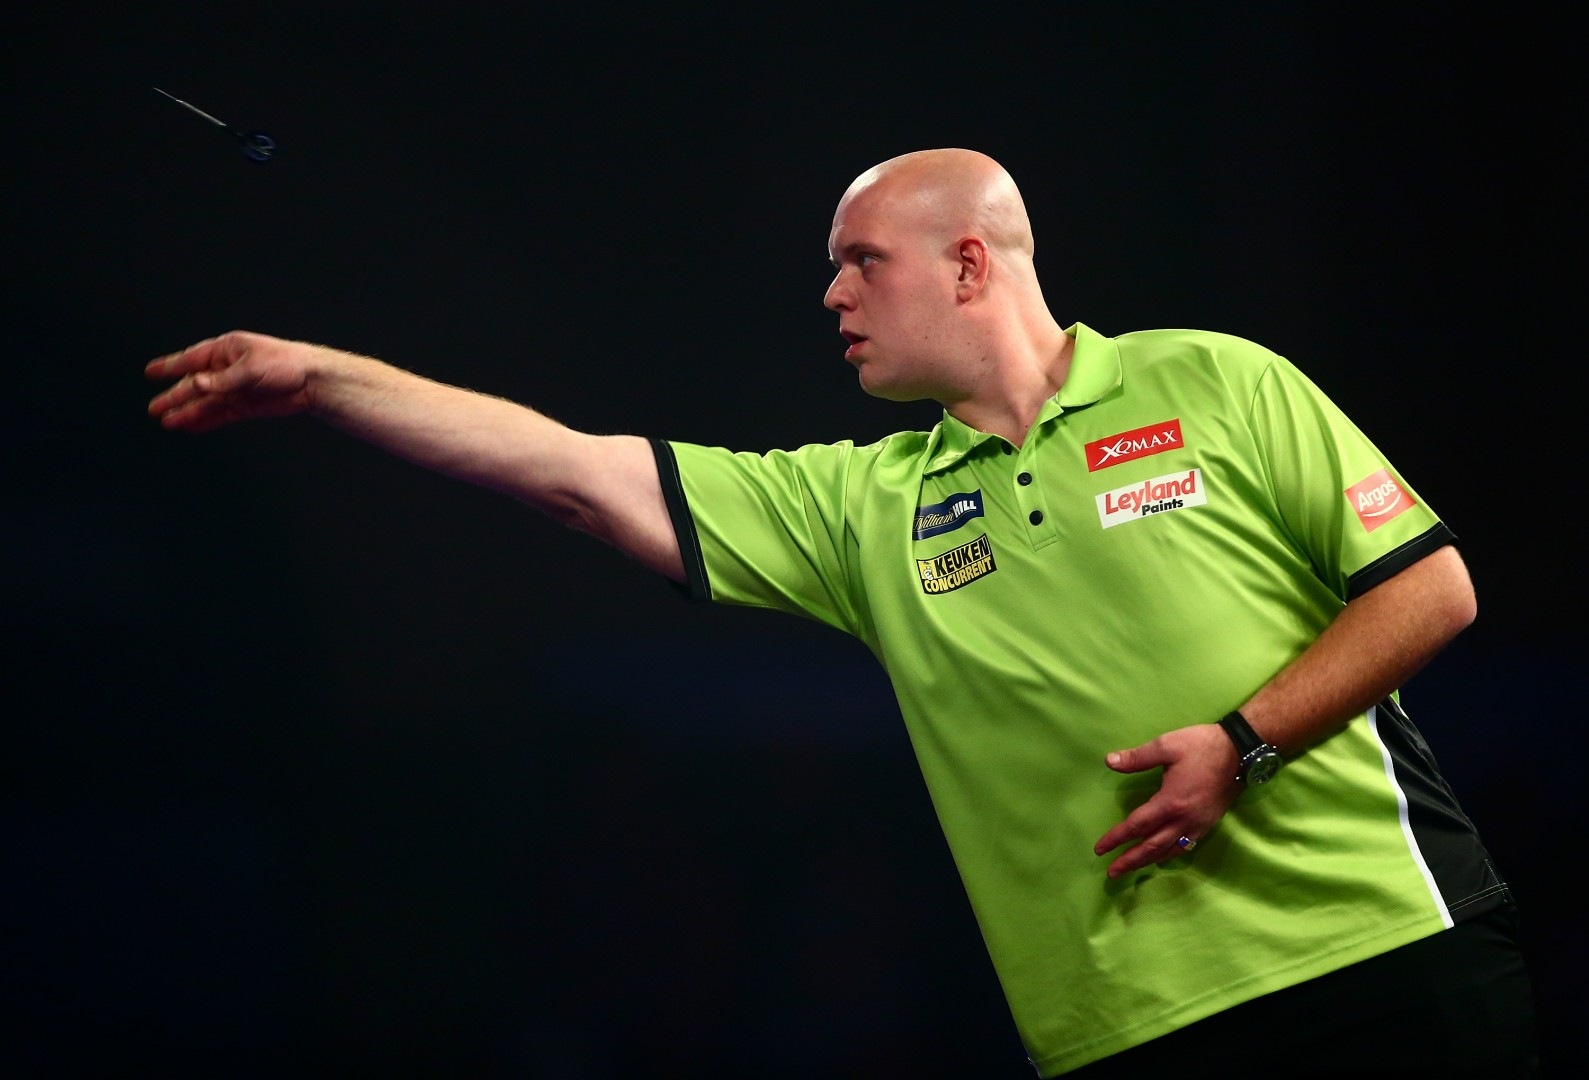 Michael van Gerwen is in for a big year